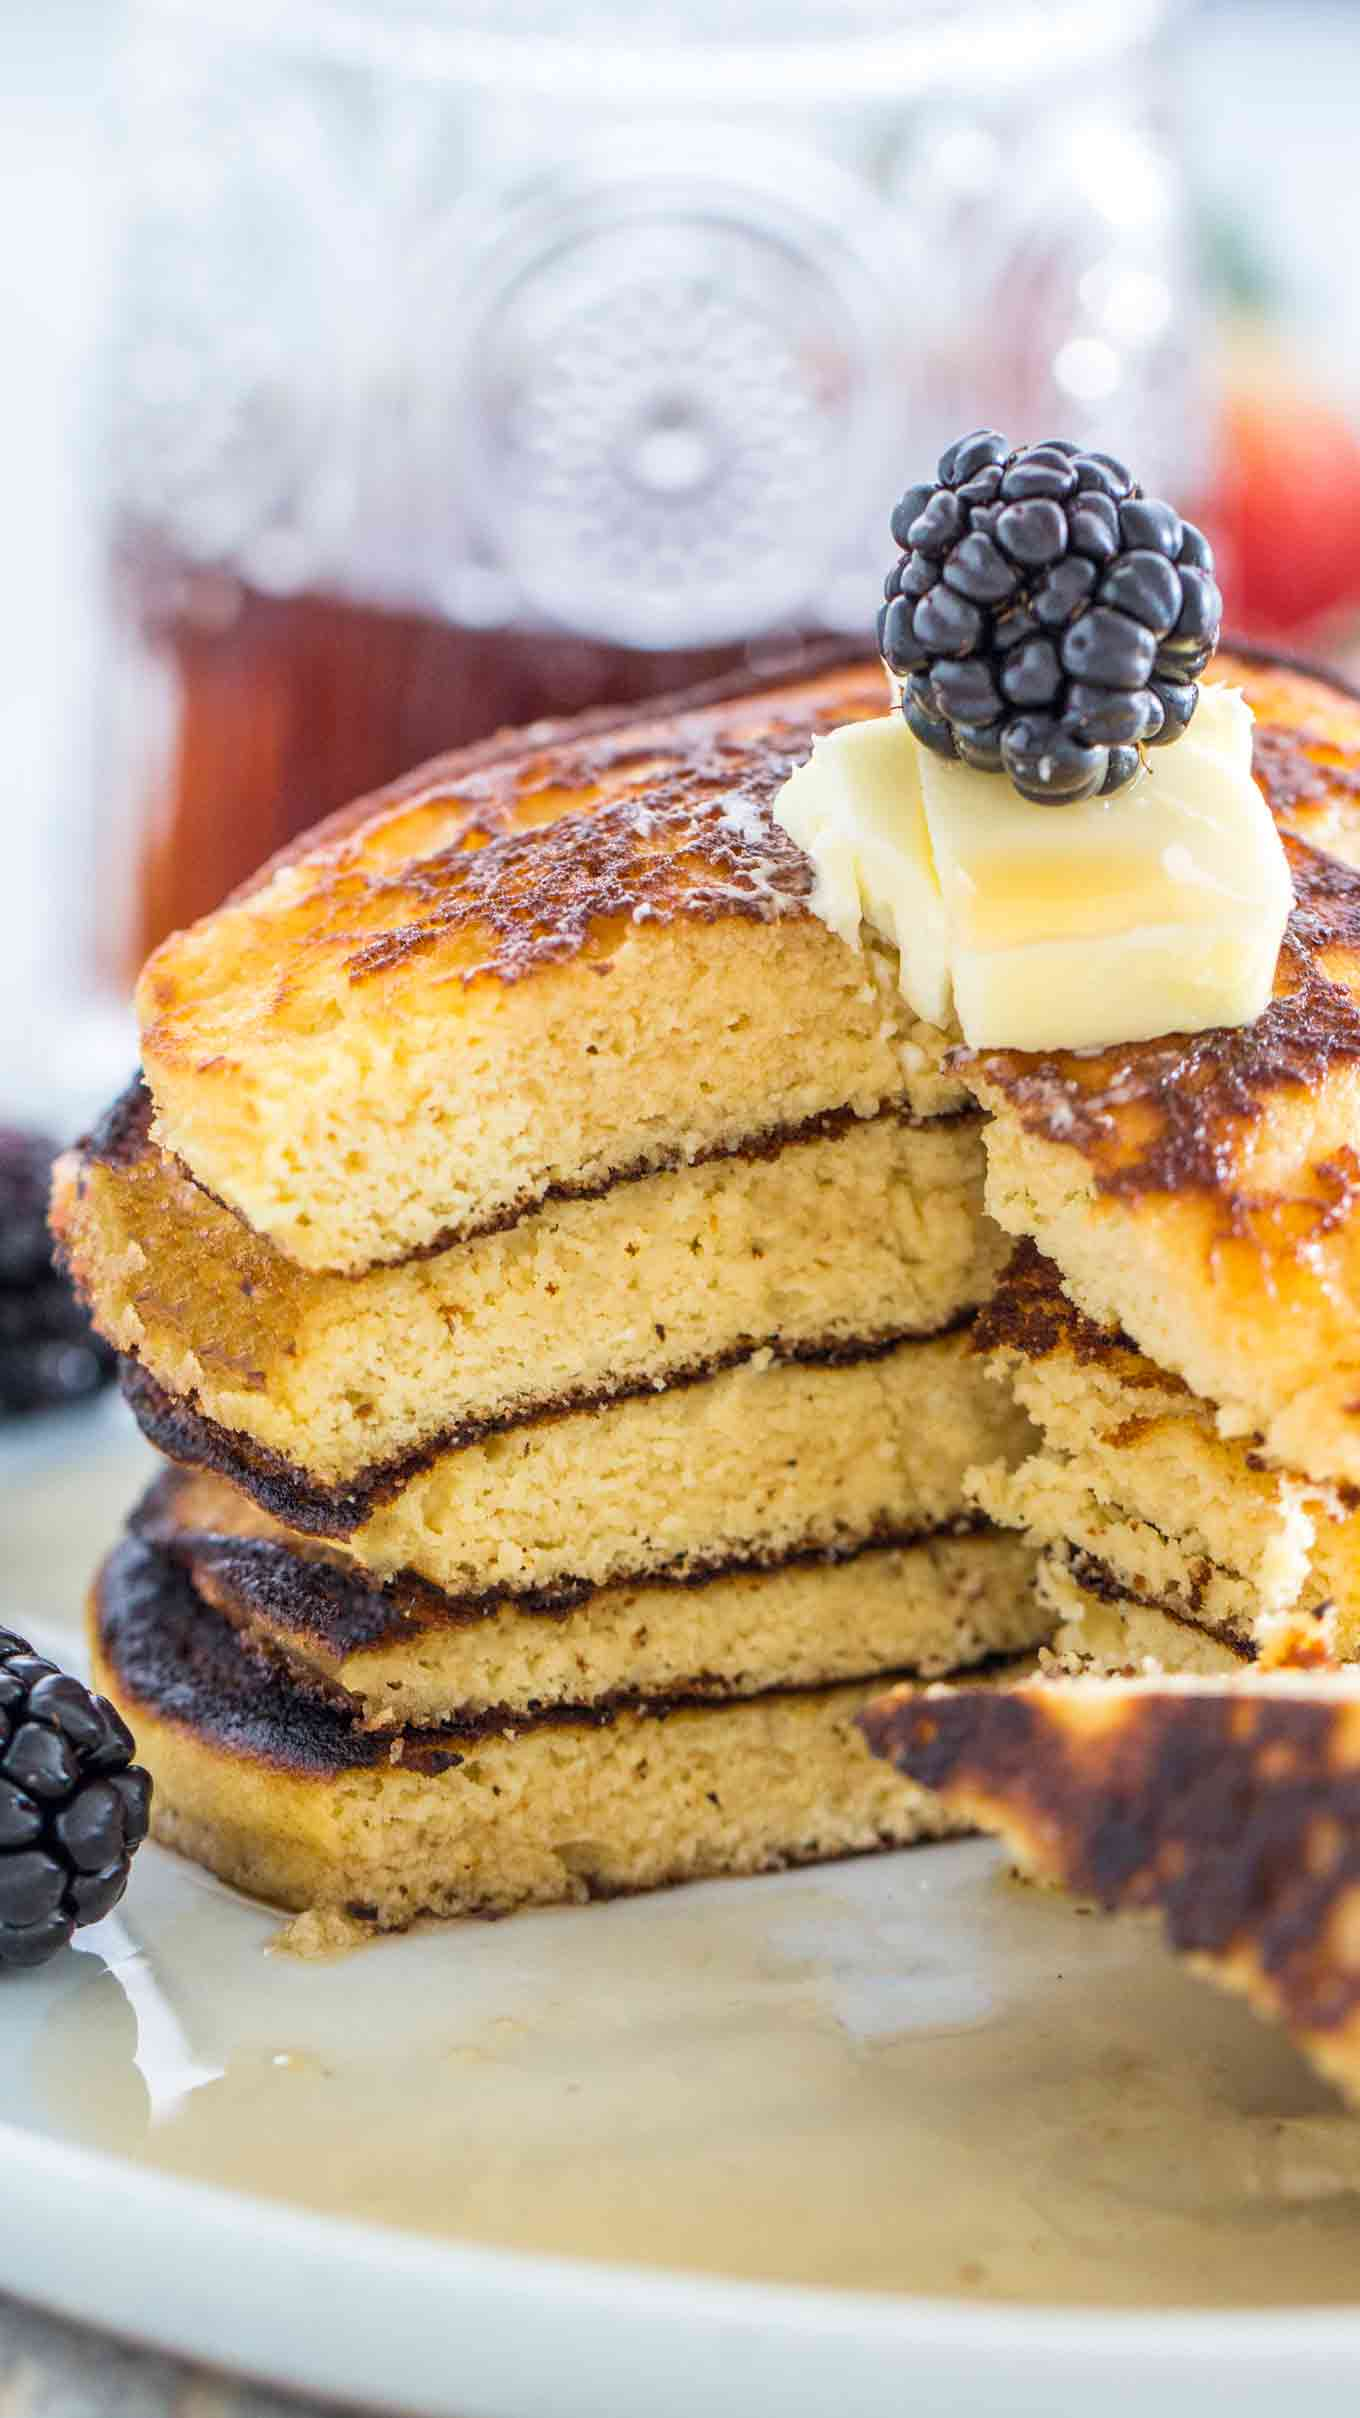 Keto Pancakes - Low Carb